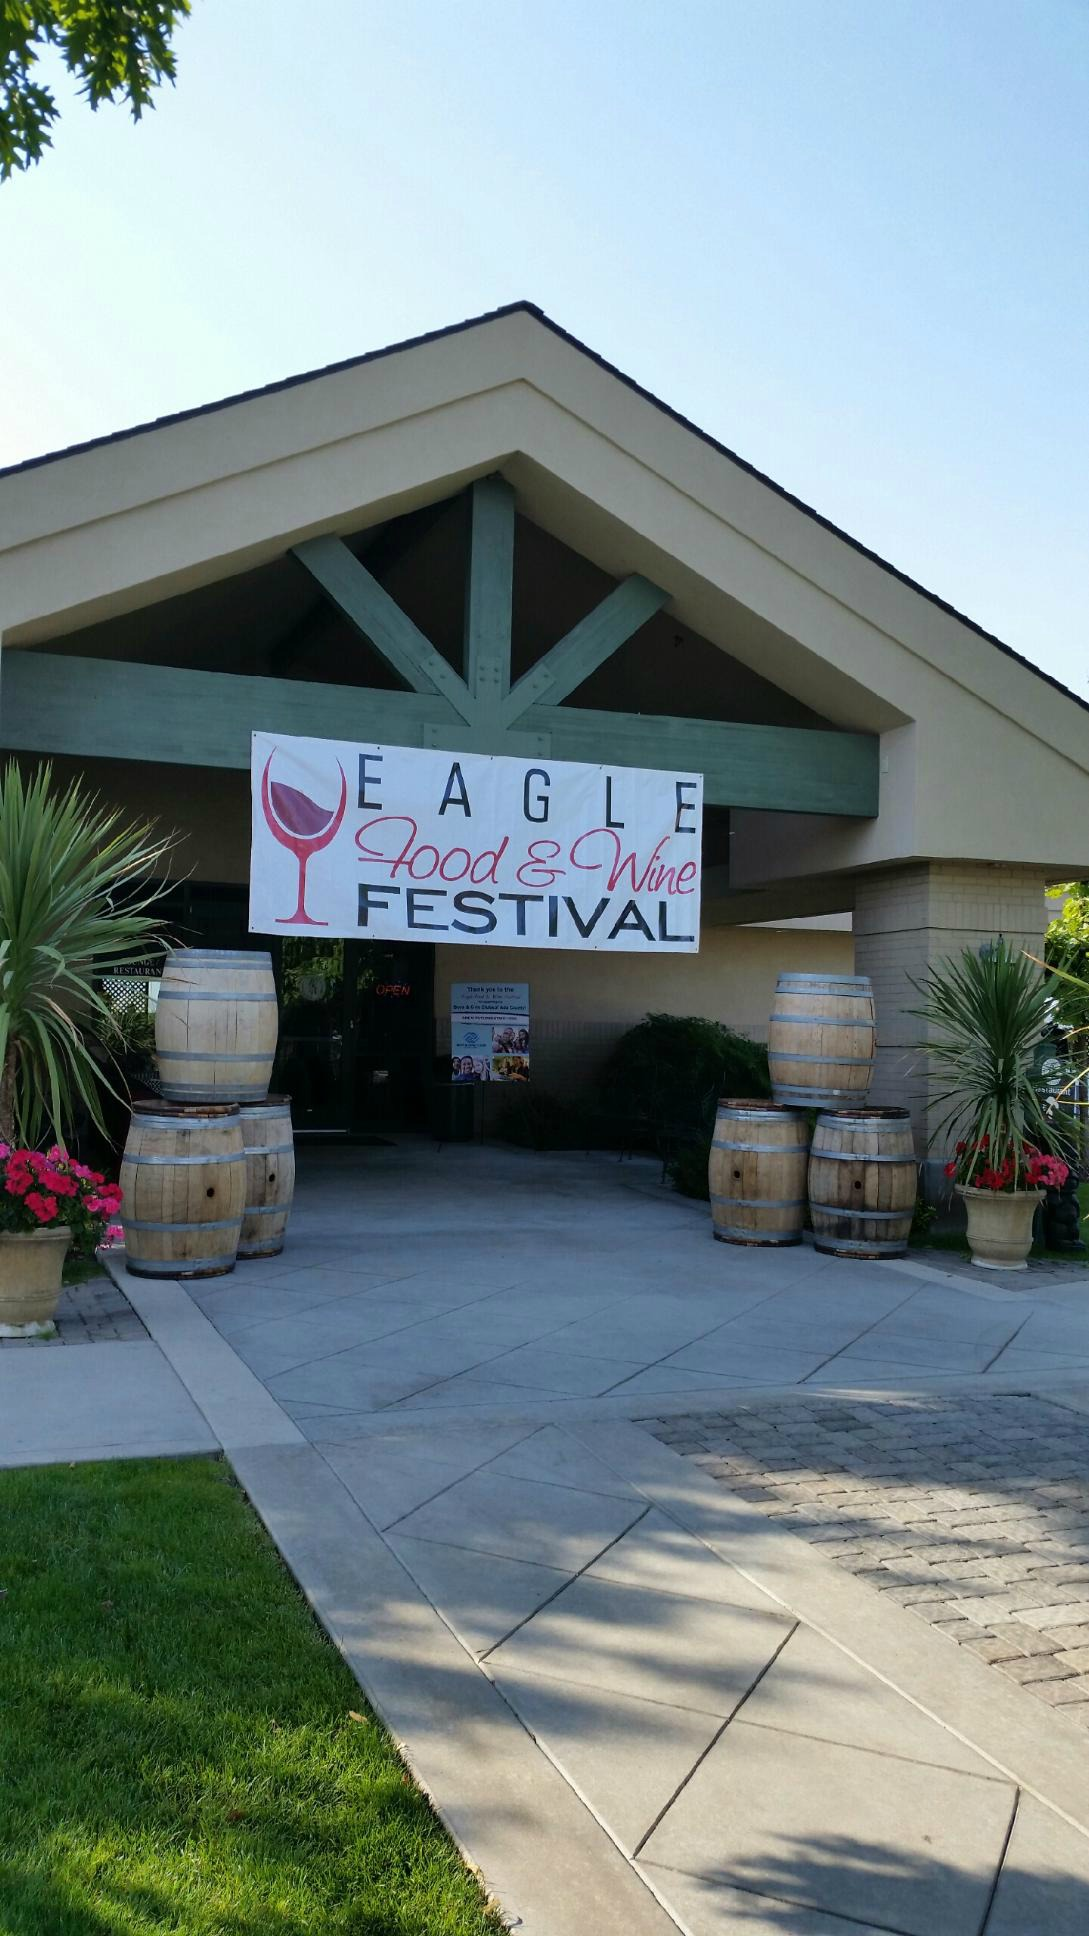 Eagle Food & Wine Festival at Banbury Golf Club